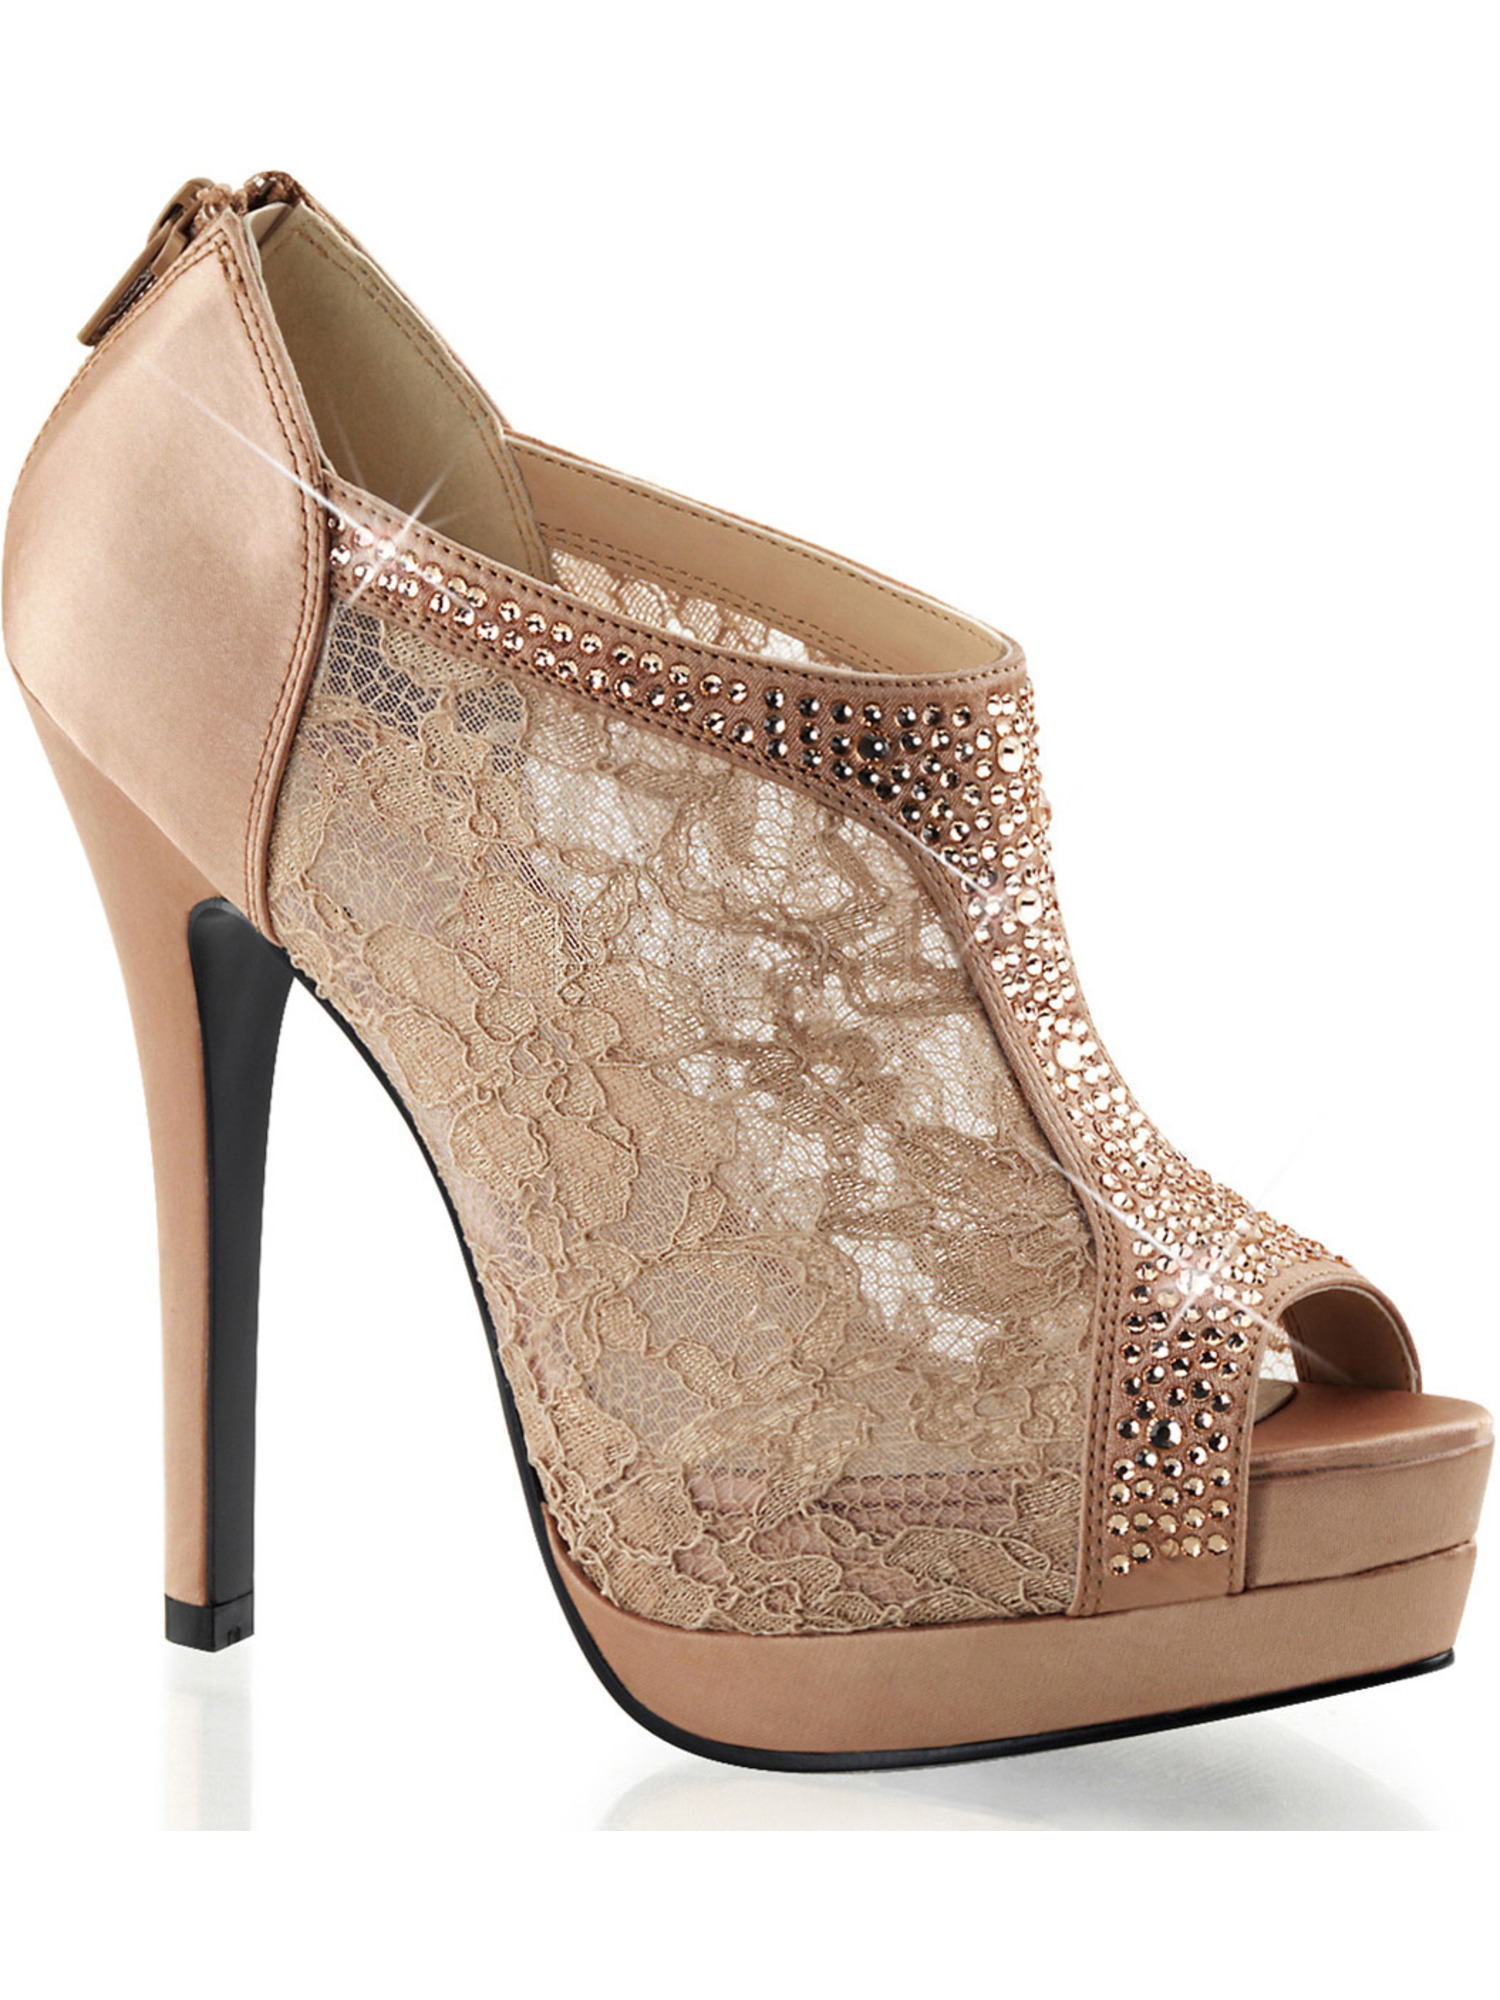 Womens Stunning Blush Satin and Lace Peep Toe Booties with Rhinestone Detail Size: 6